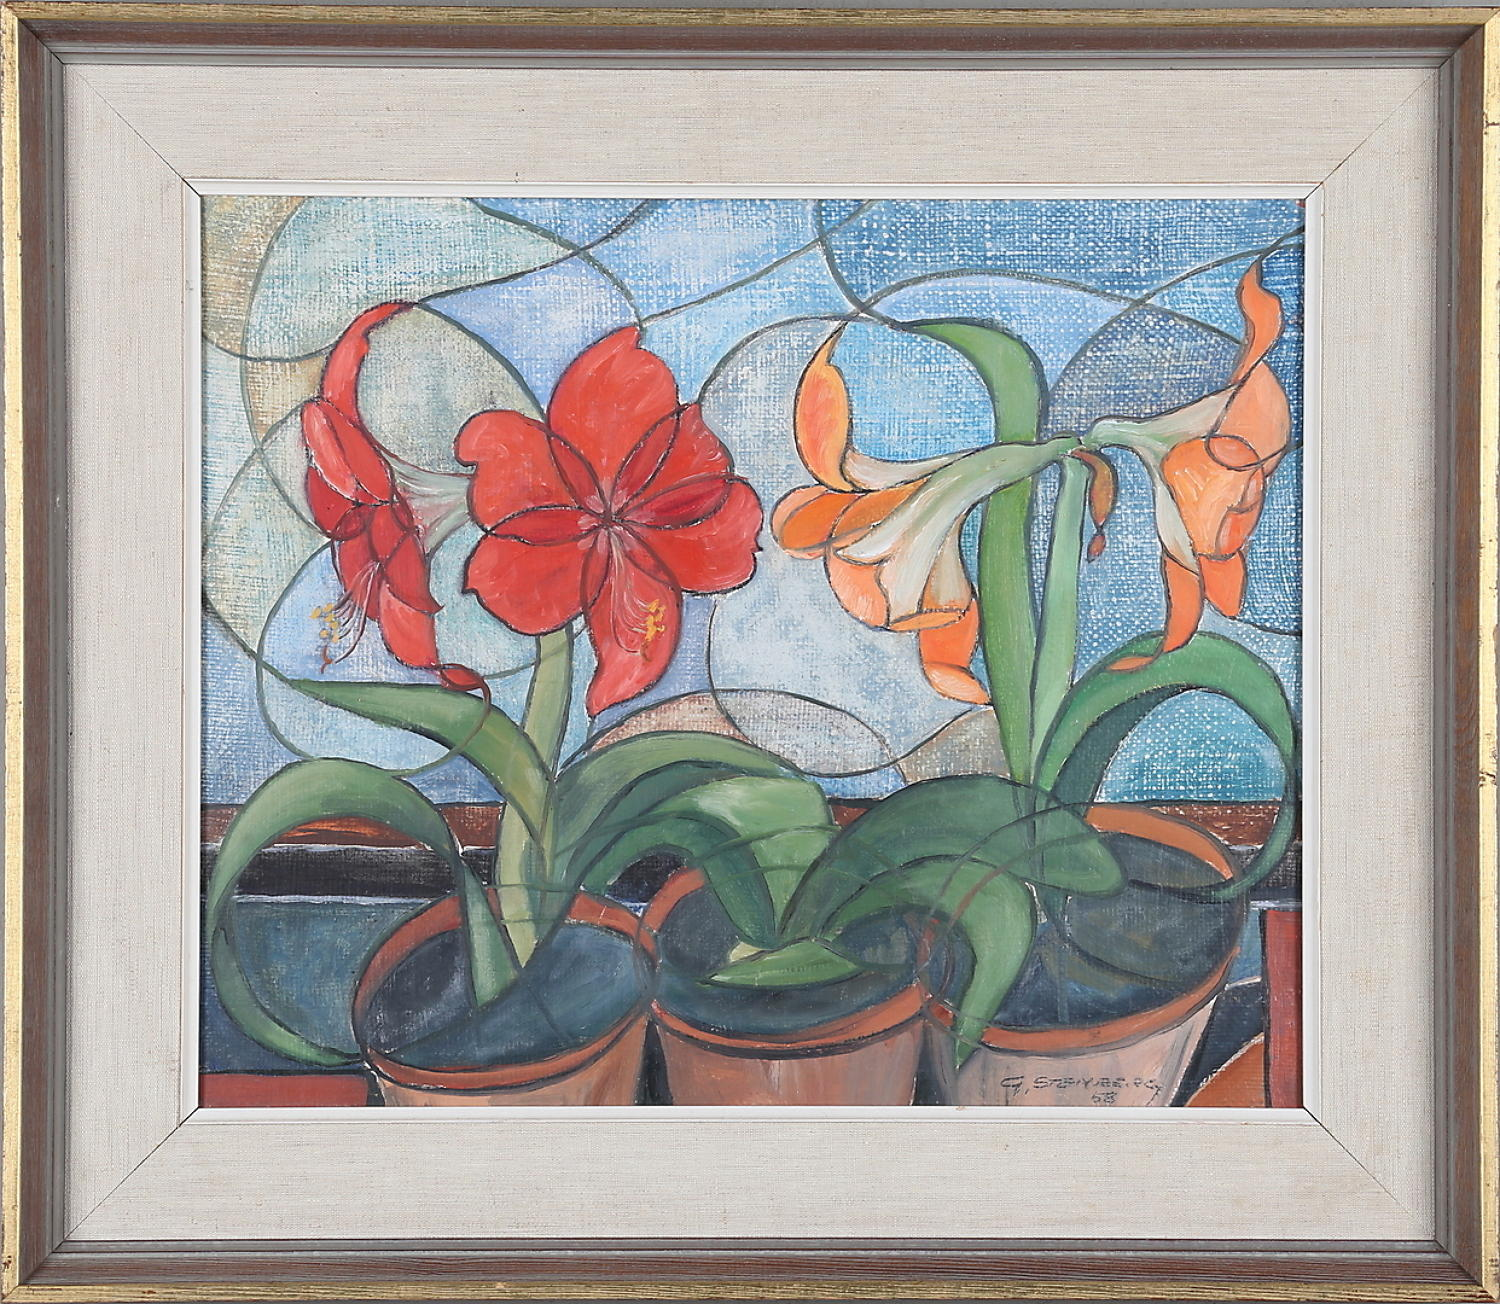 GUNNAR STENBERG, Amaryllis, oil on canvas